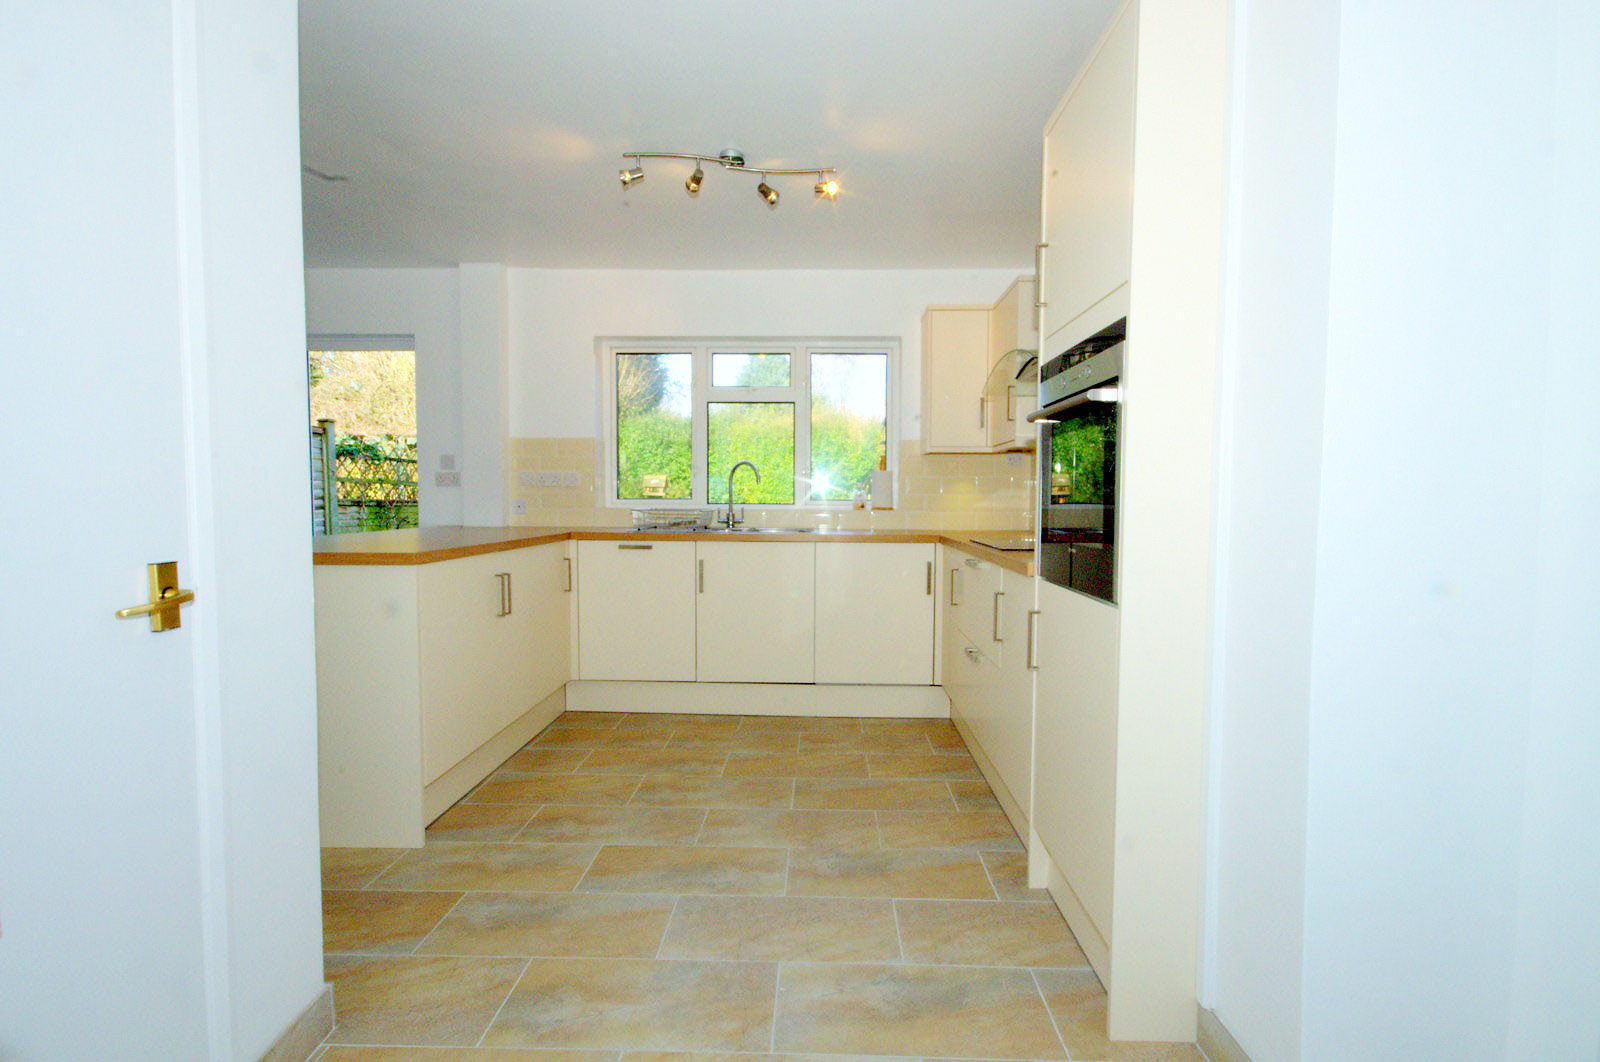 3 bed house semi detached to rent elderfield road 3 bedroom house for rent in wexham slough 3 bedroom house for rent in cippenham slough